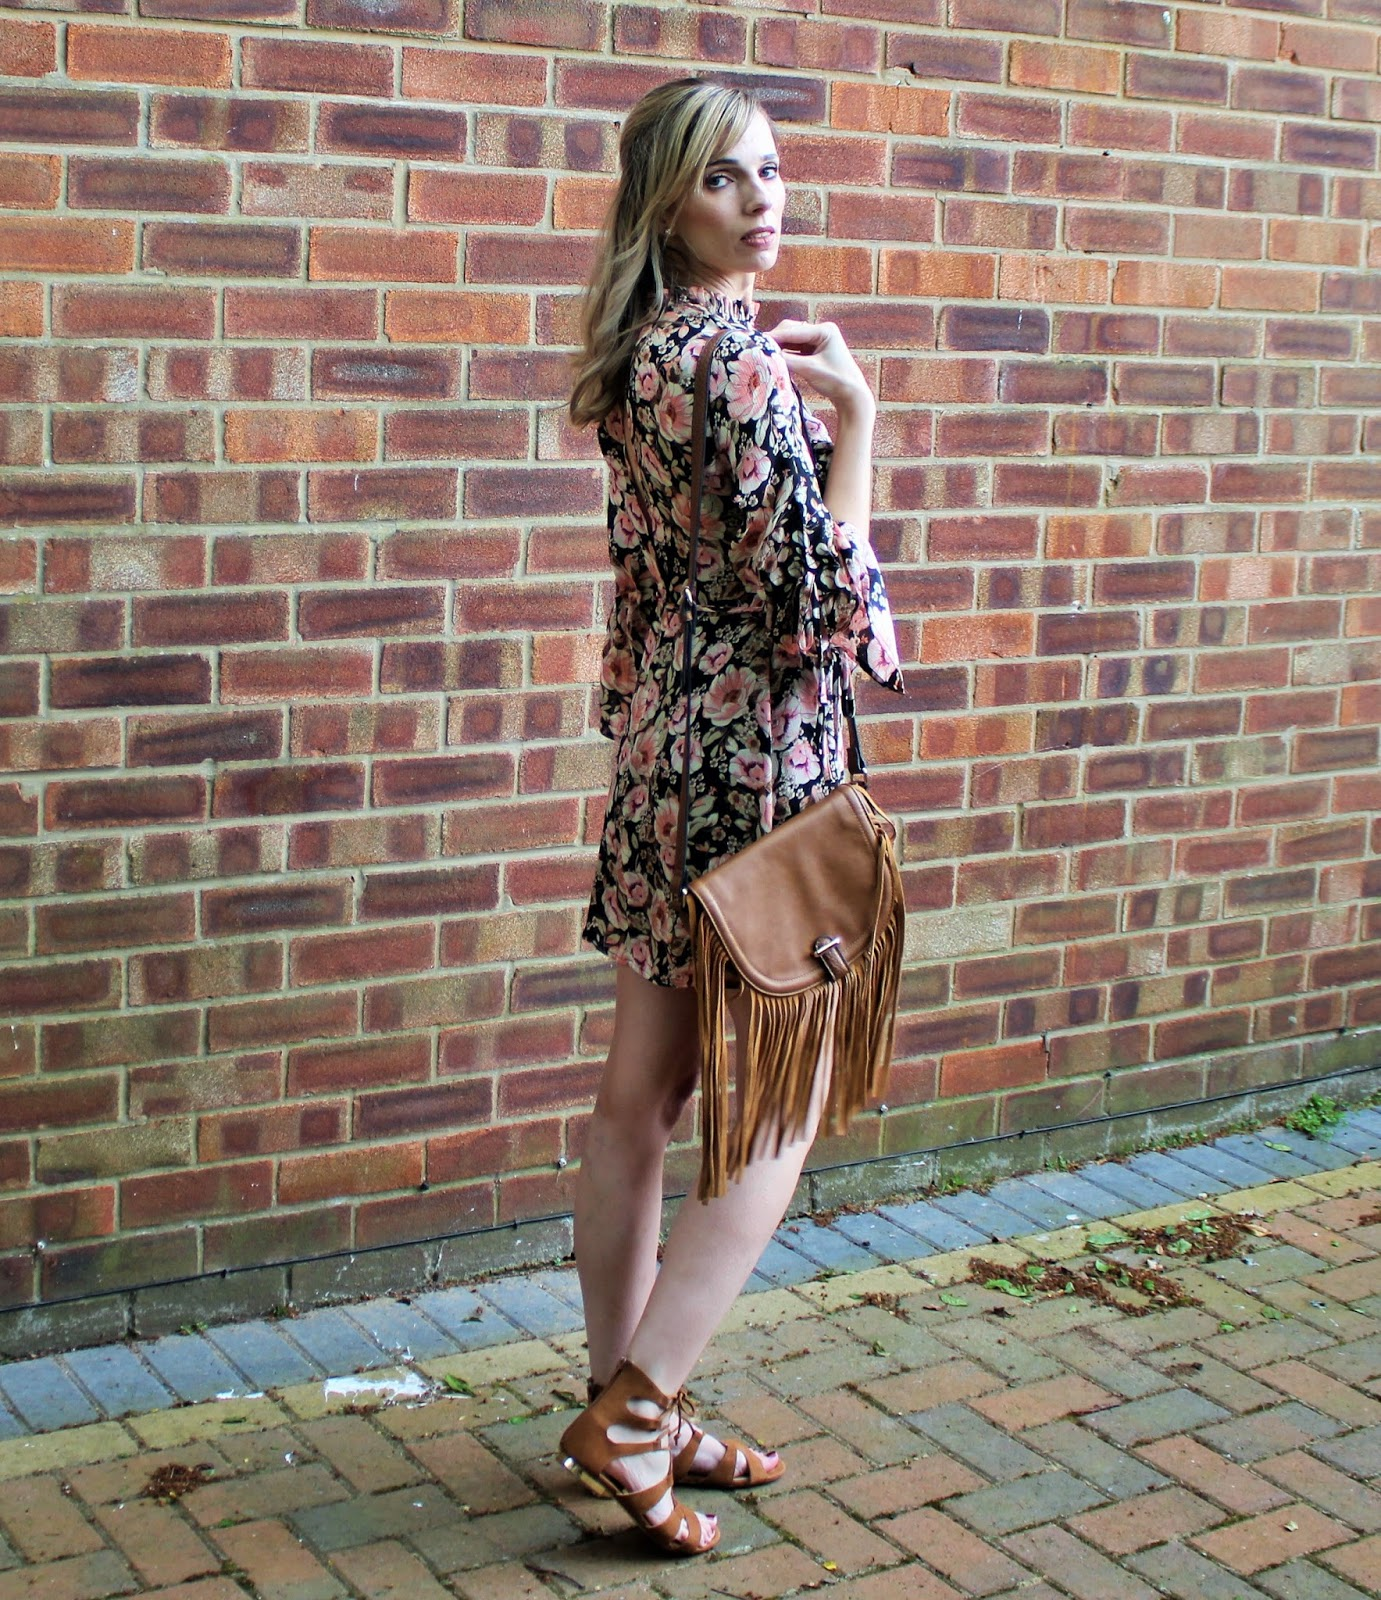 OOTD featuring a floral dress from Topshop and beaded bracelet from Lola Rose - 8